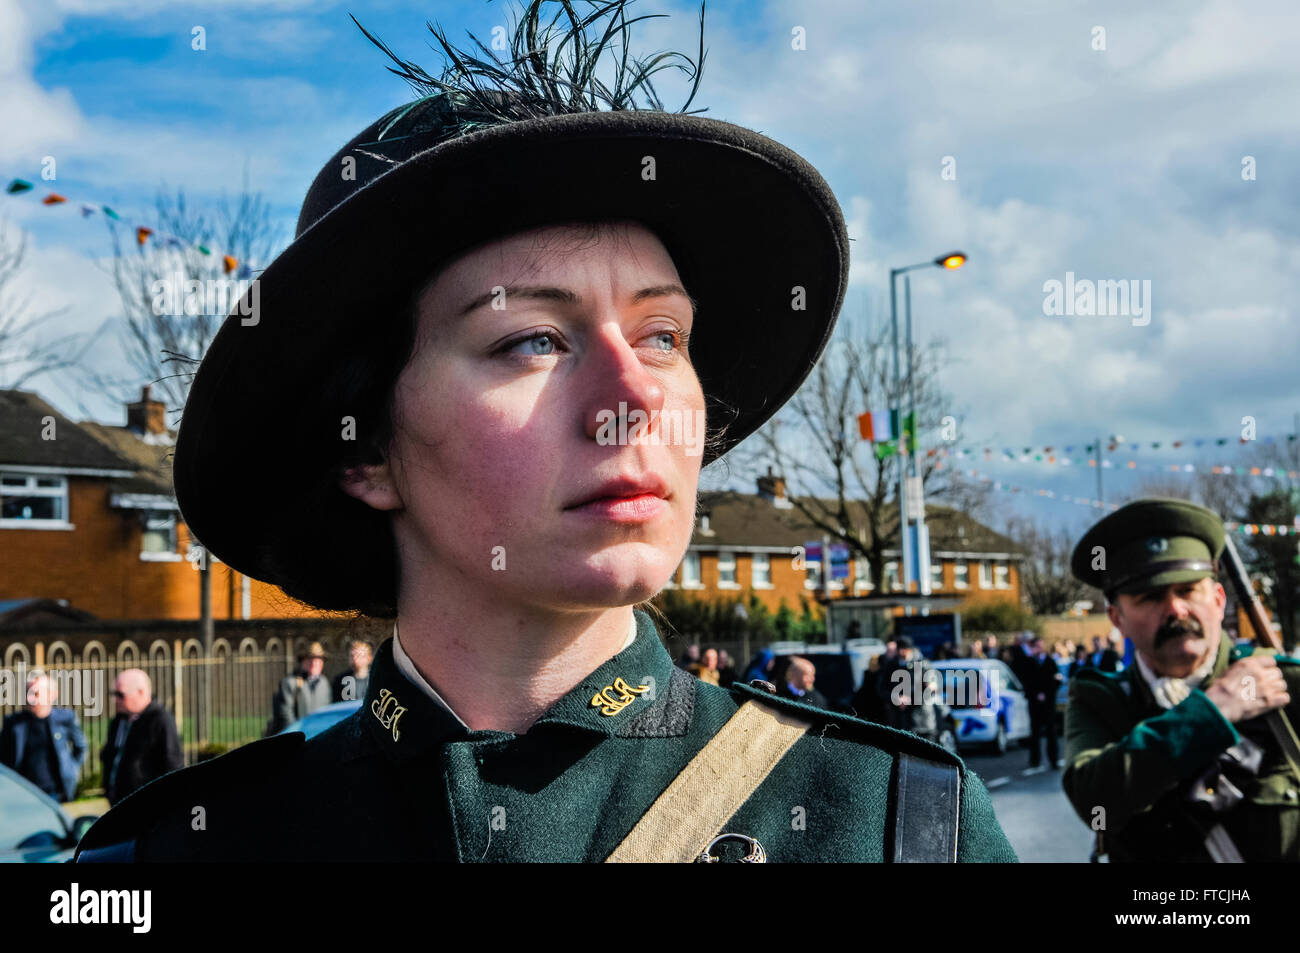 Belfast, Northern Ireland. 27 Mar 2016 - A woman dressed in a reproduction uniform for the Irish Citizen Army from Stock Photo